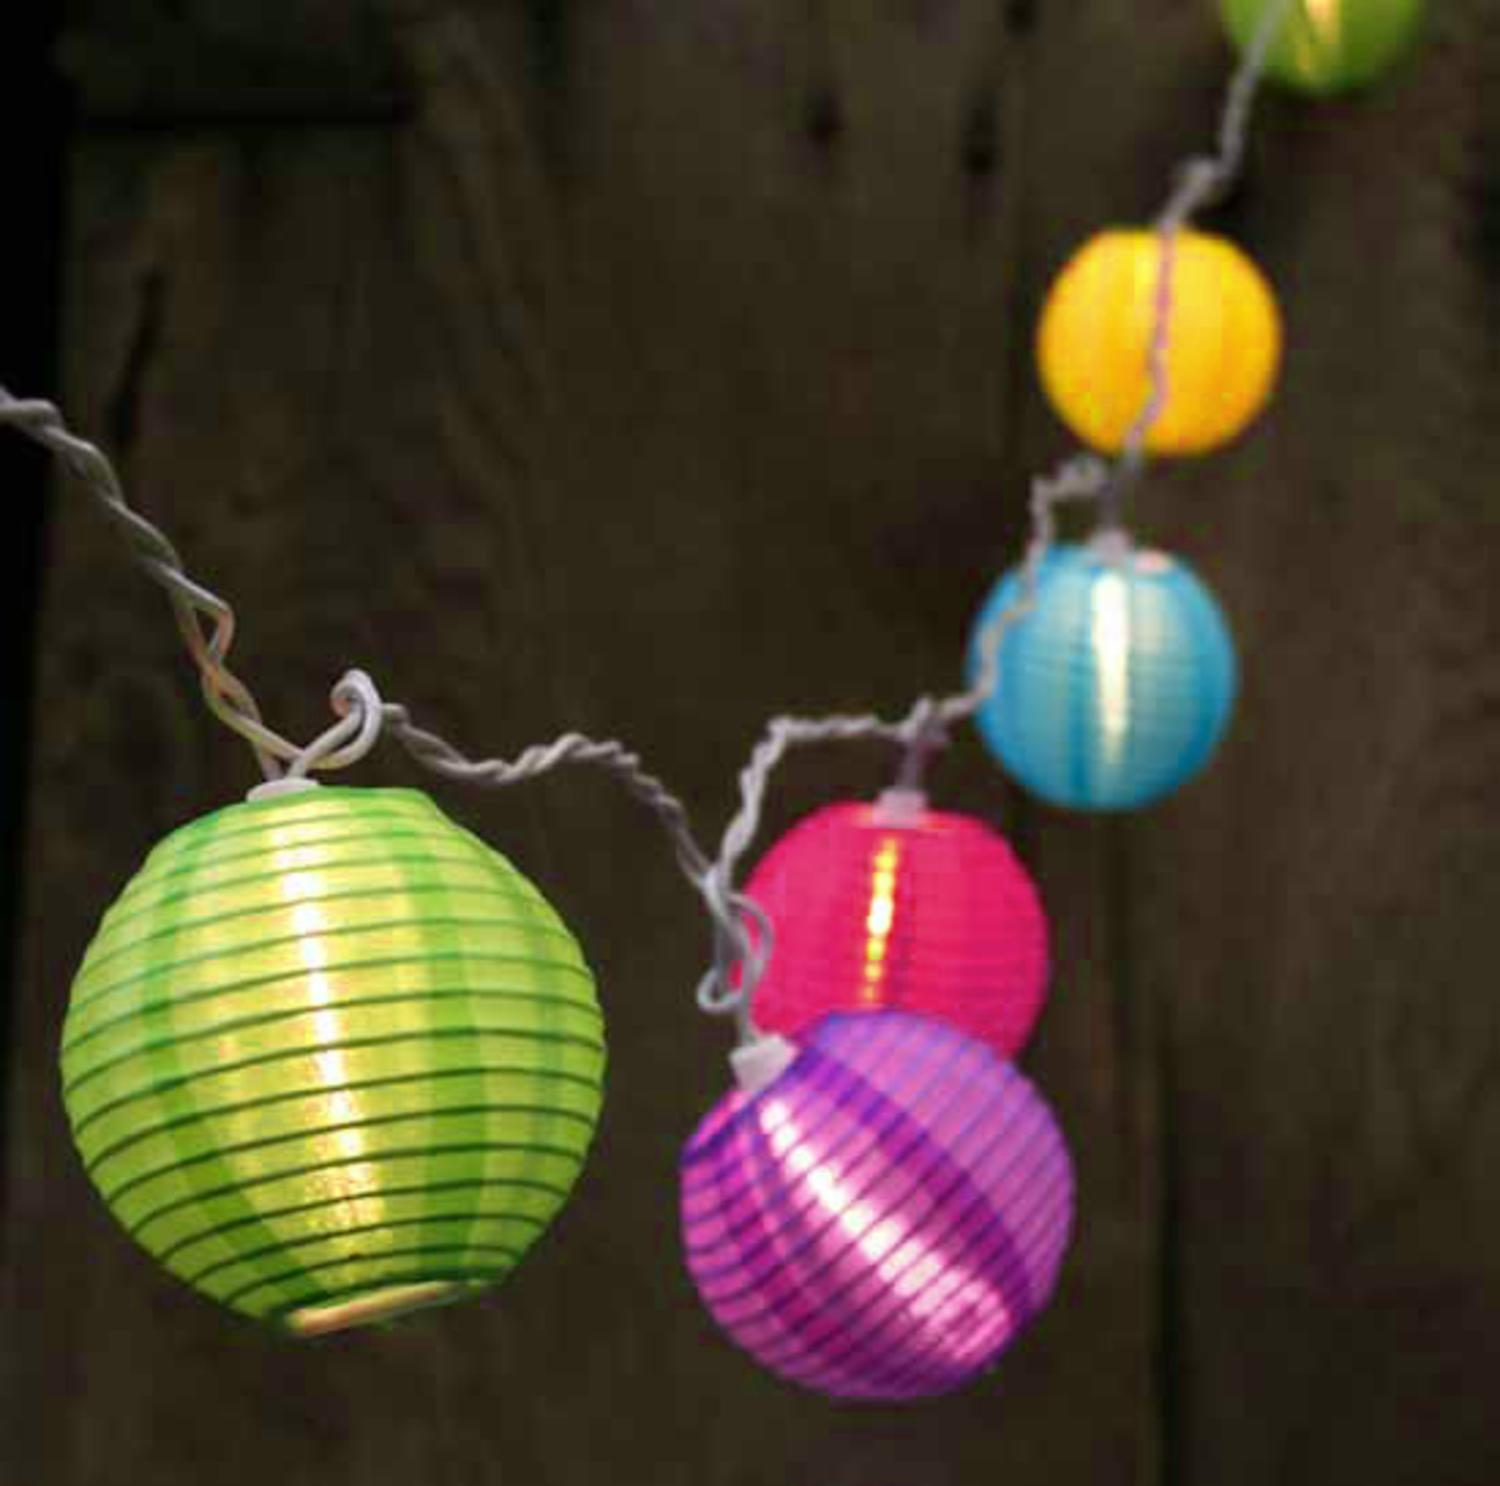 Set of 10 Bright and Colorful Round Chinese Lantern Patio Lights - White Wire